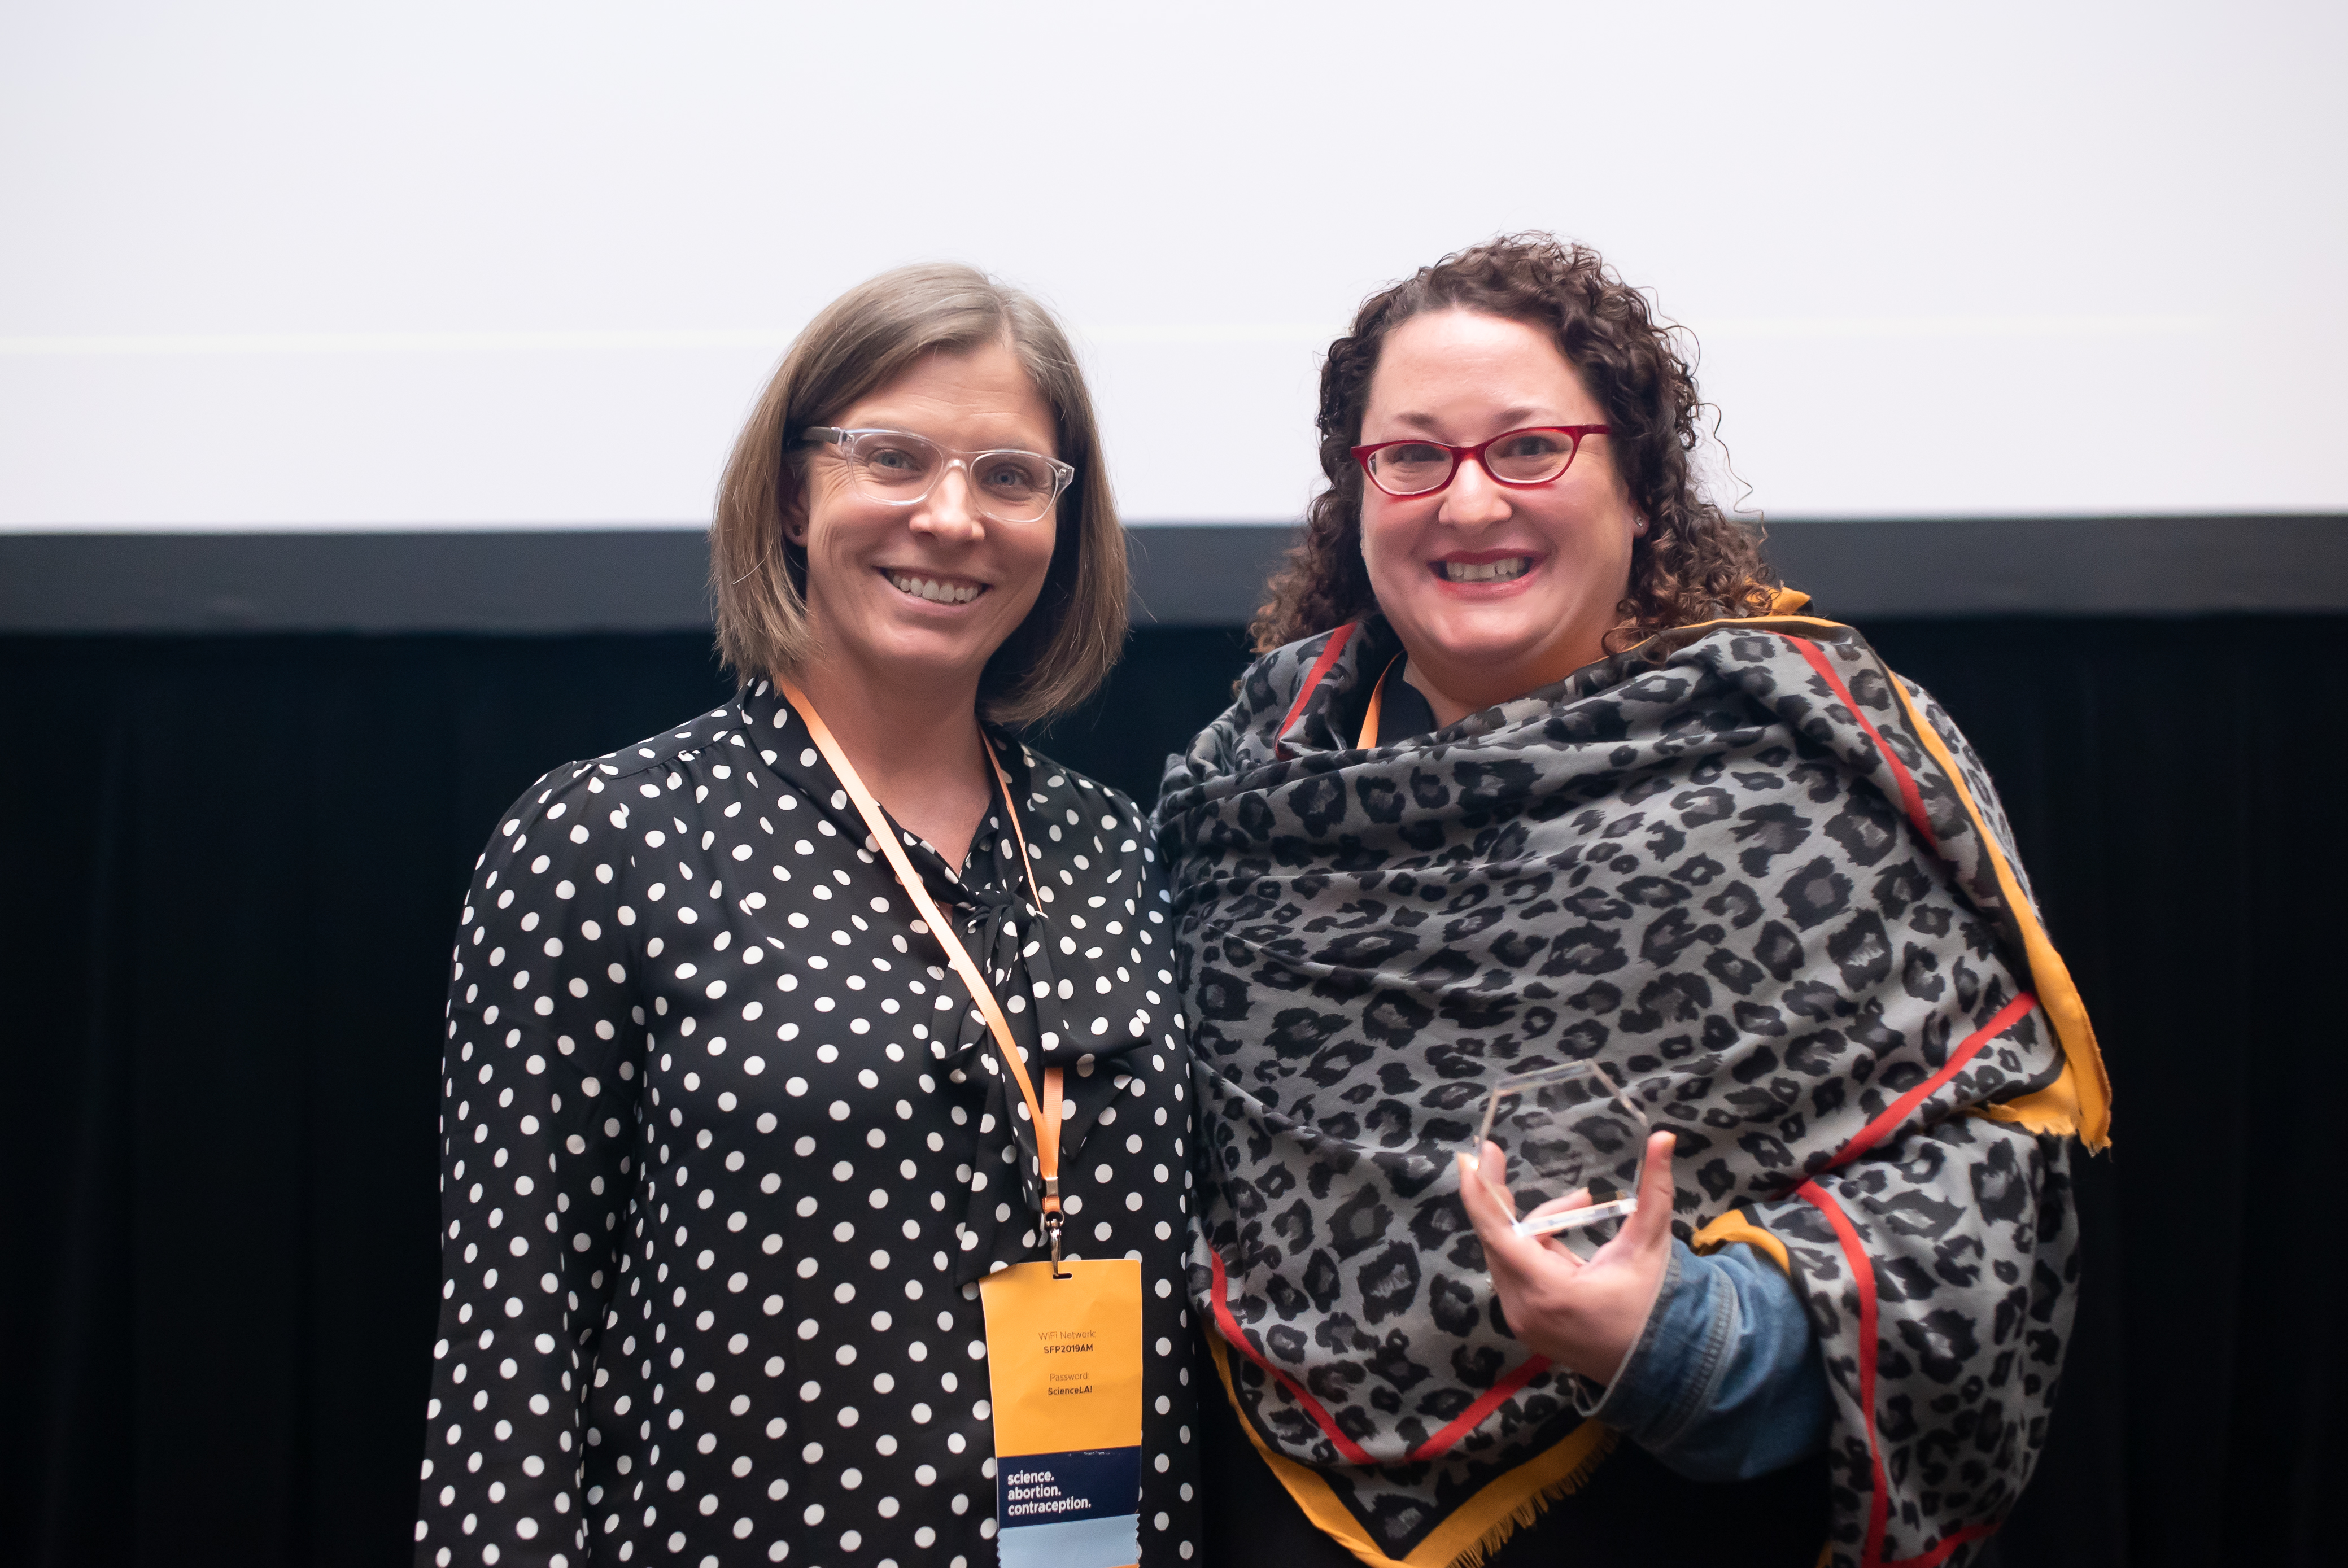 Aileen Gariepy MD, MPH, FACOG, MHS Receiving a 2019 Outstanding Research Award